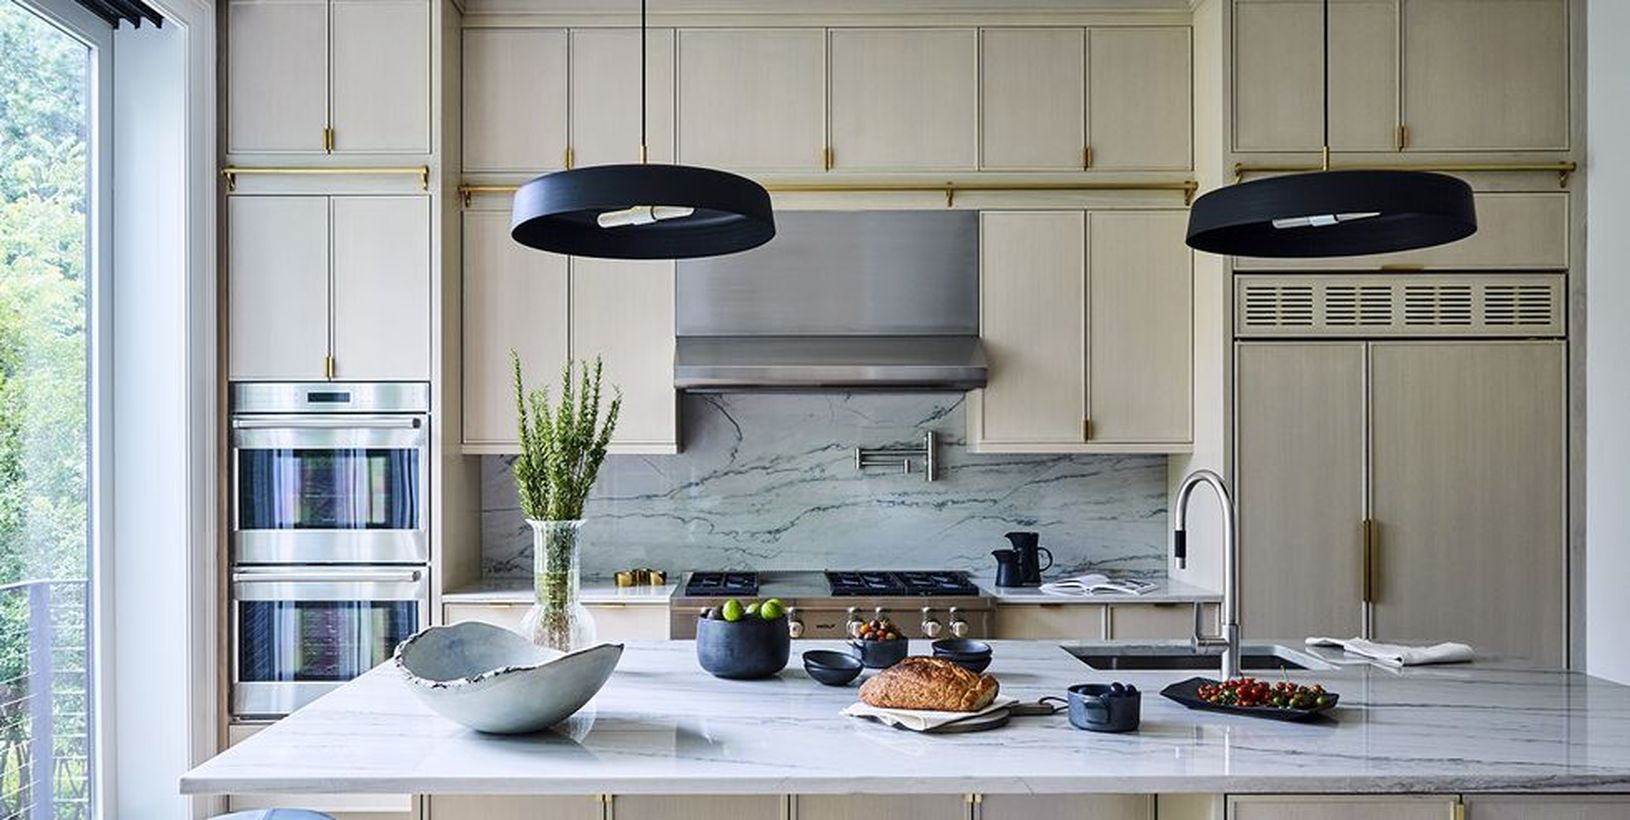 1circular-pendant-lights-from-lambert-fils-provide-contrast-and-bring-out-streaks-of-black-in-the-marble-countertops